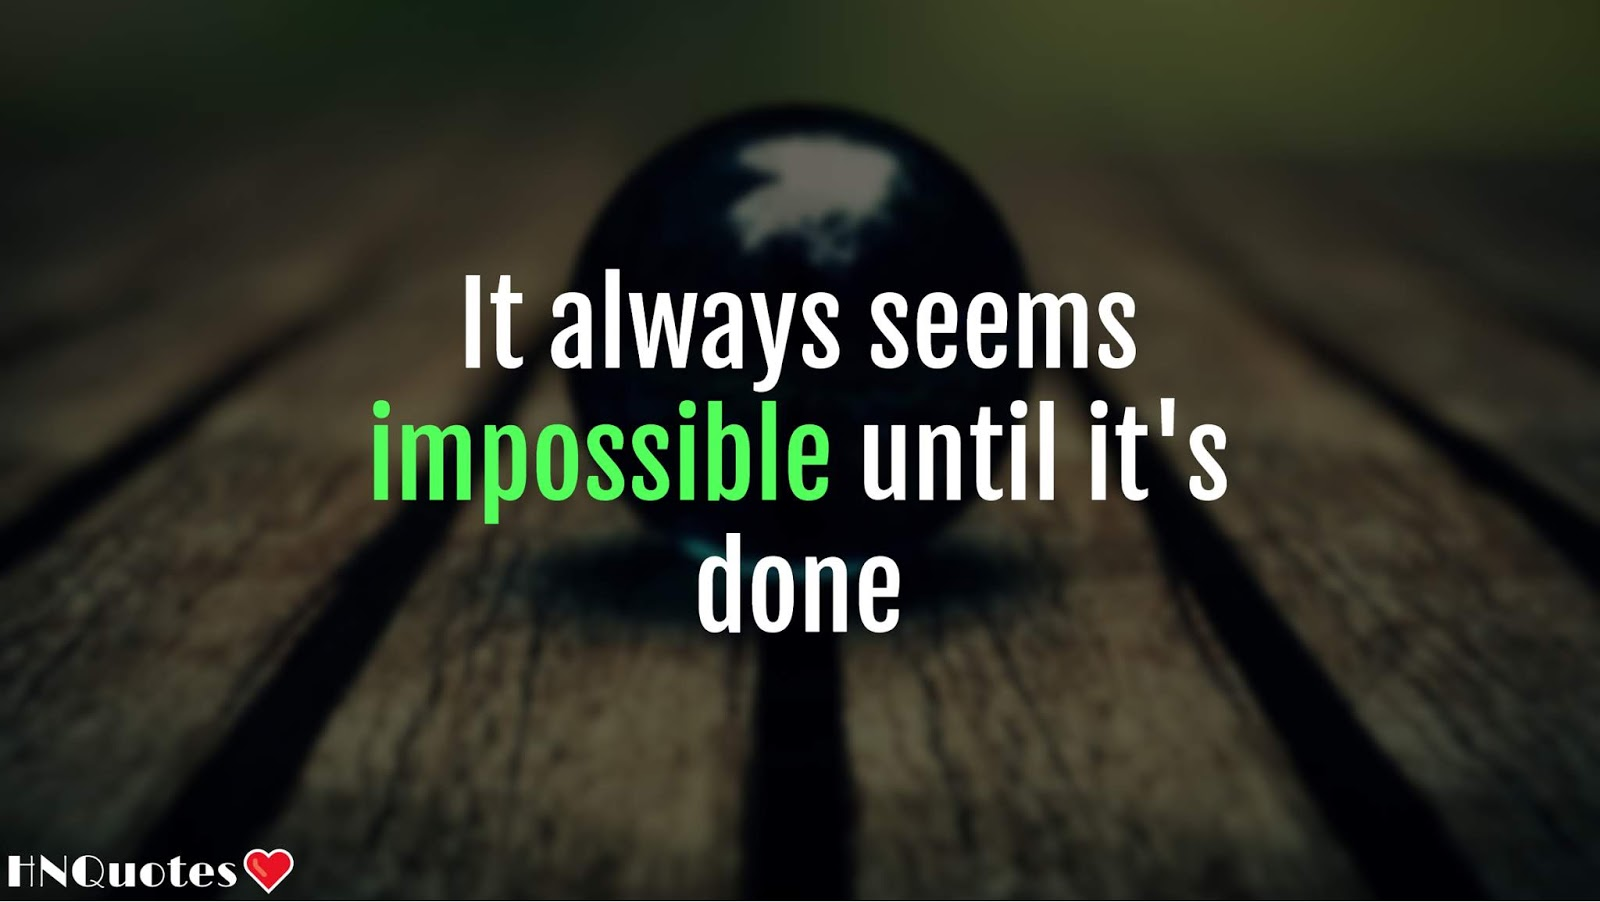 Nothing is Impossible | Motivational Quotes | HNQuotes